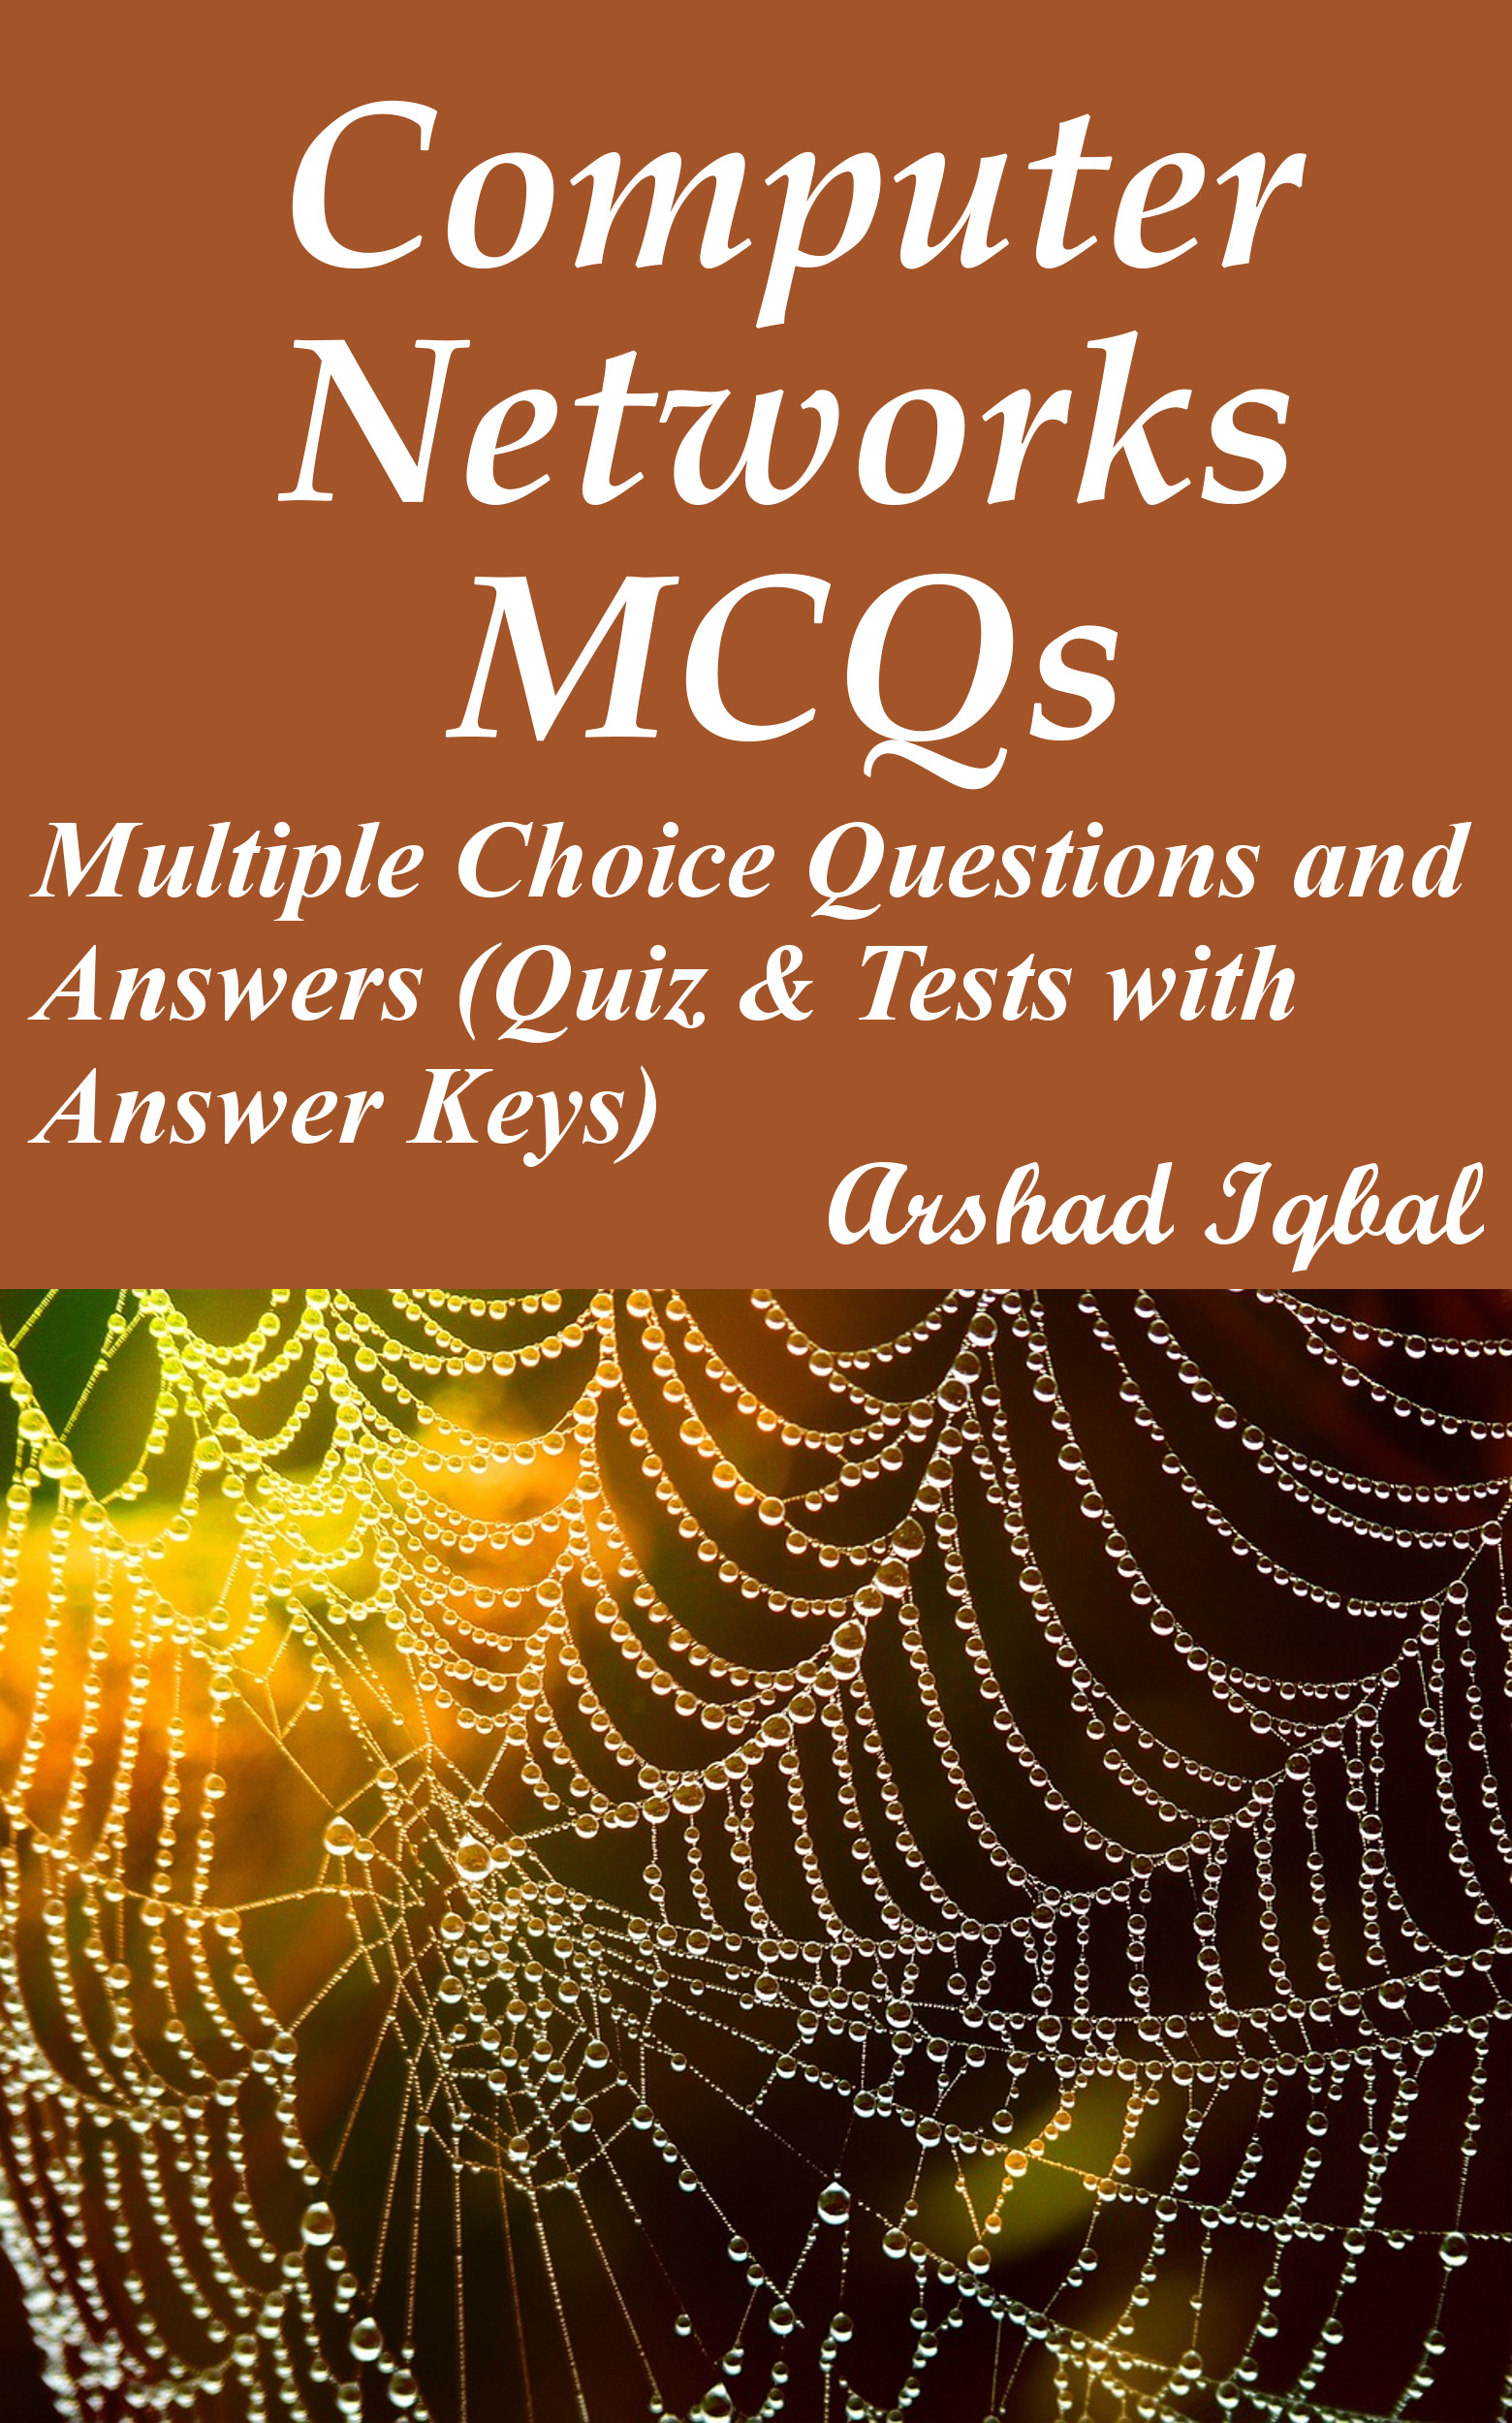 Computer Networks Multiple Choice Questions and Answers (MCQs): Quizzes & Practice Tests with Answer Key